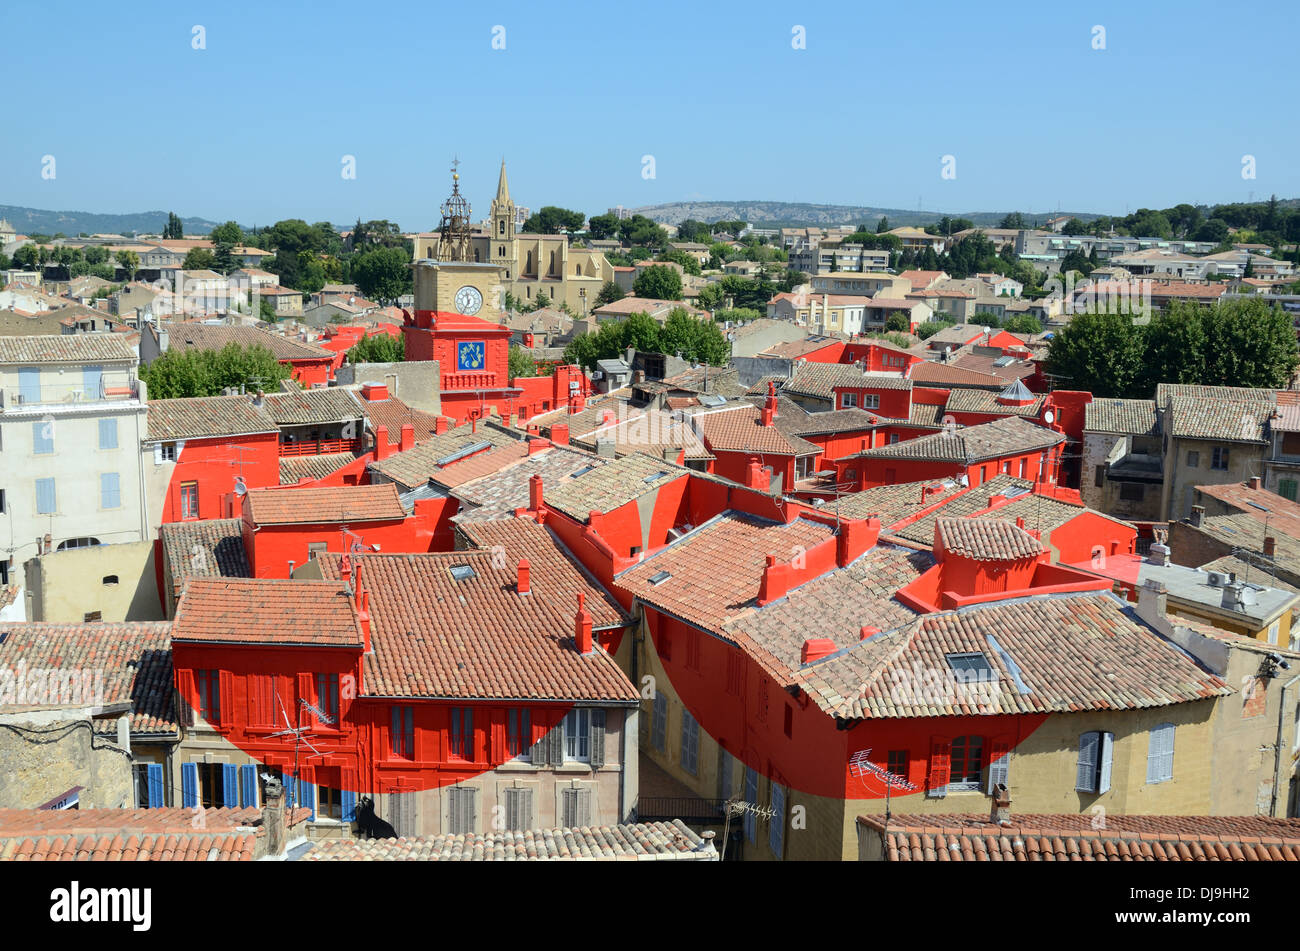 Salon Provencal View Over Salon De Provence Painted Red Art Installation